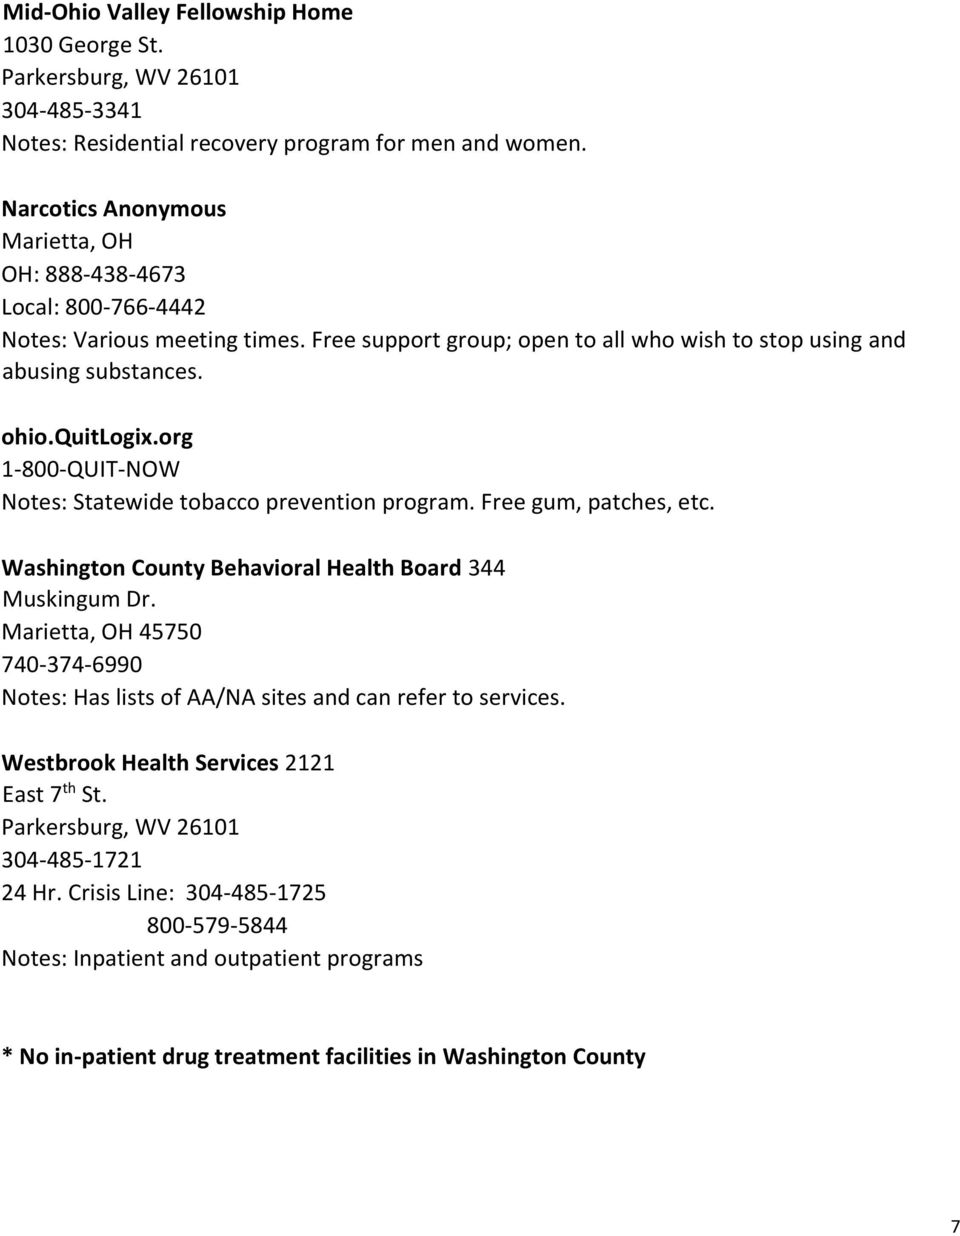 org 1-800-QUIT-NOW Notes: Statewide tobacco prevention program. Free gum, patches, etc. Washington County Behavioral Health Board 344 Muskingum Dr.